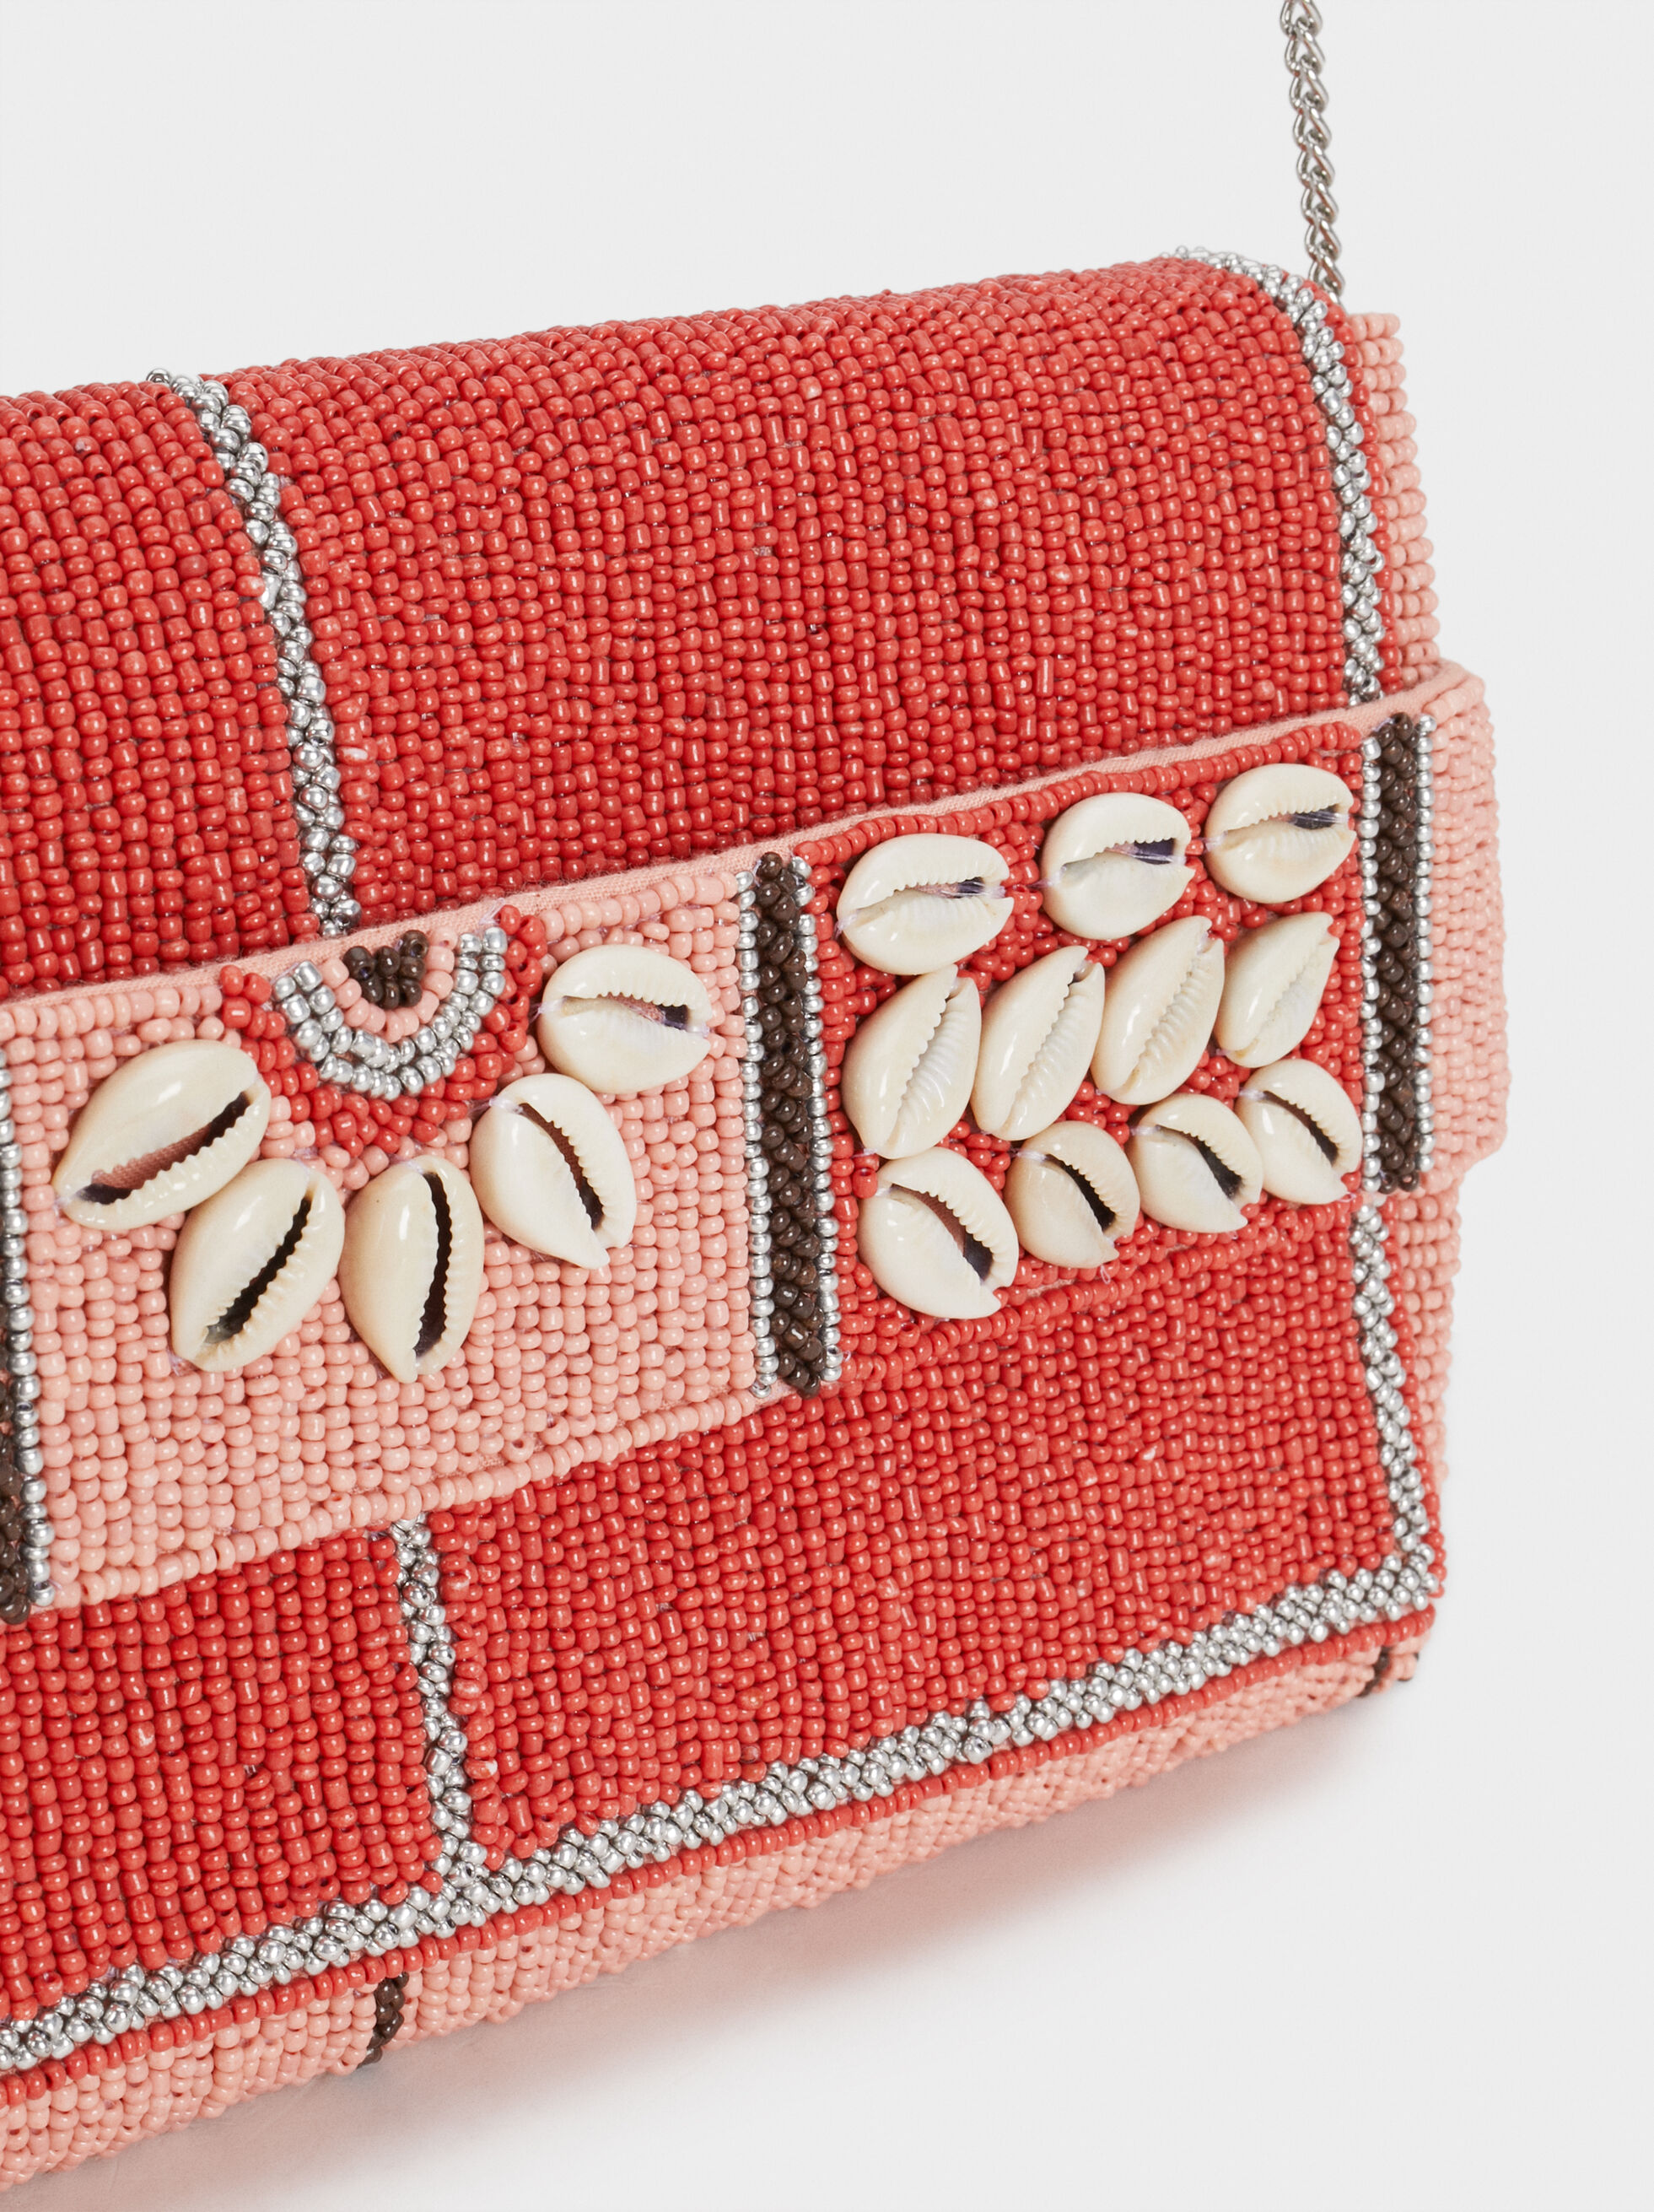 Party Clutch With Beading And Seashells, Pink, hi-res